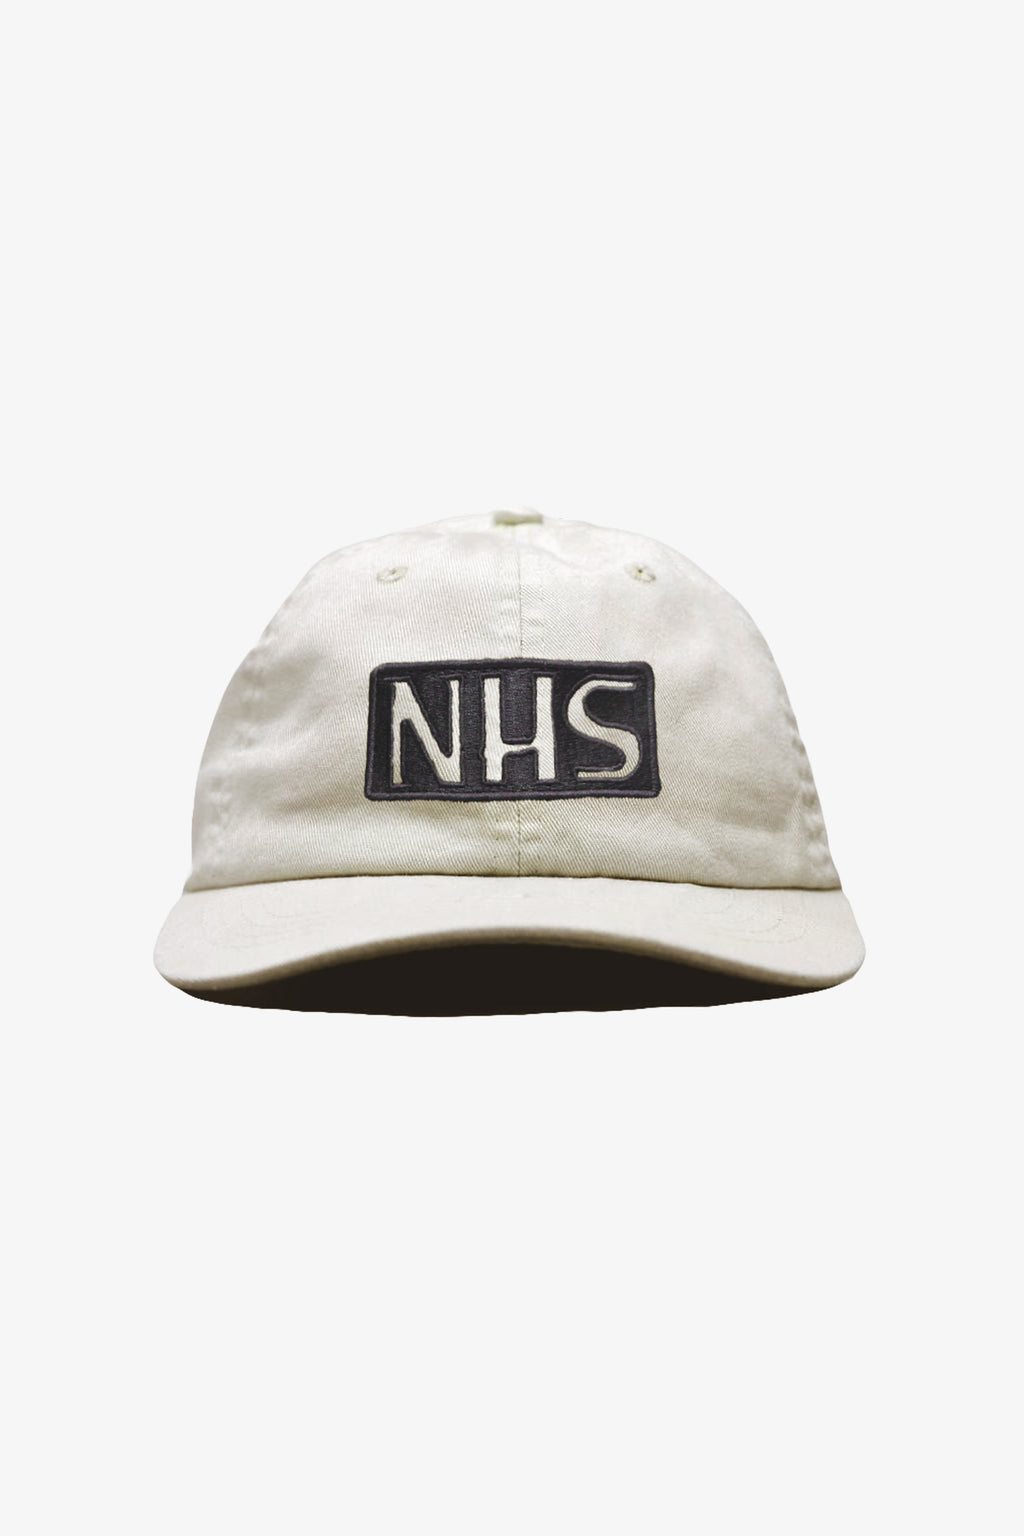 Blacksmith - NHS Fundraiser Cap - Light Beige